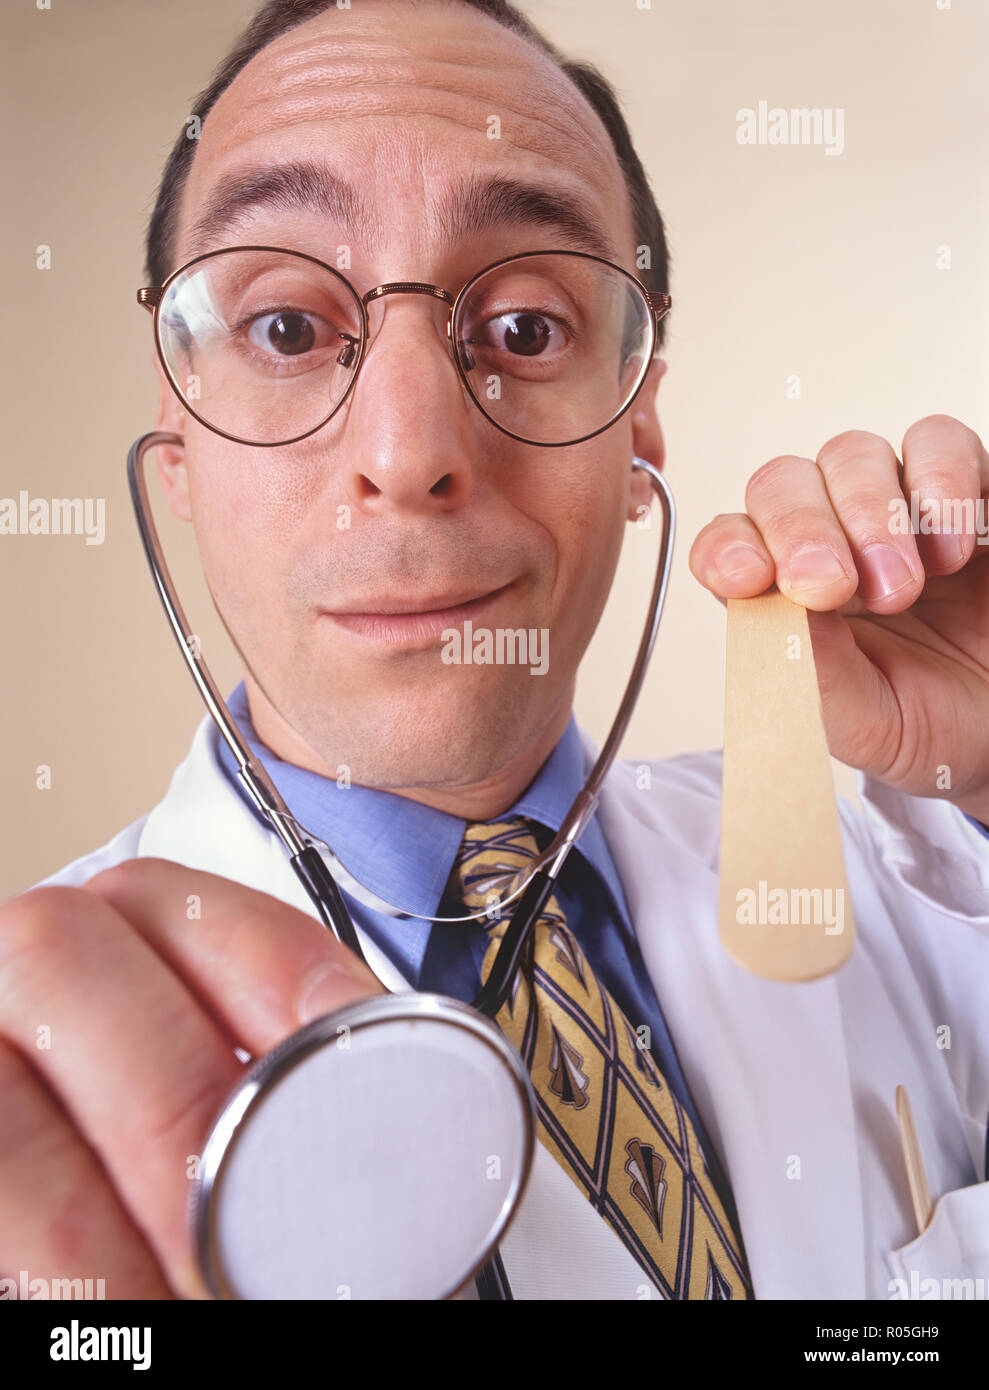 A doctors visit from a patient's personal perspective or view and doctor looking into patients mouth - Stock Image